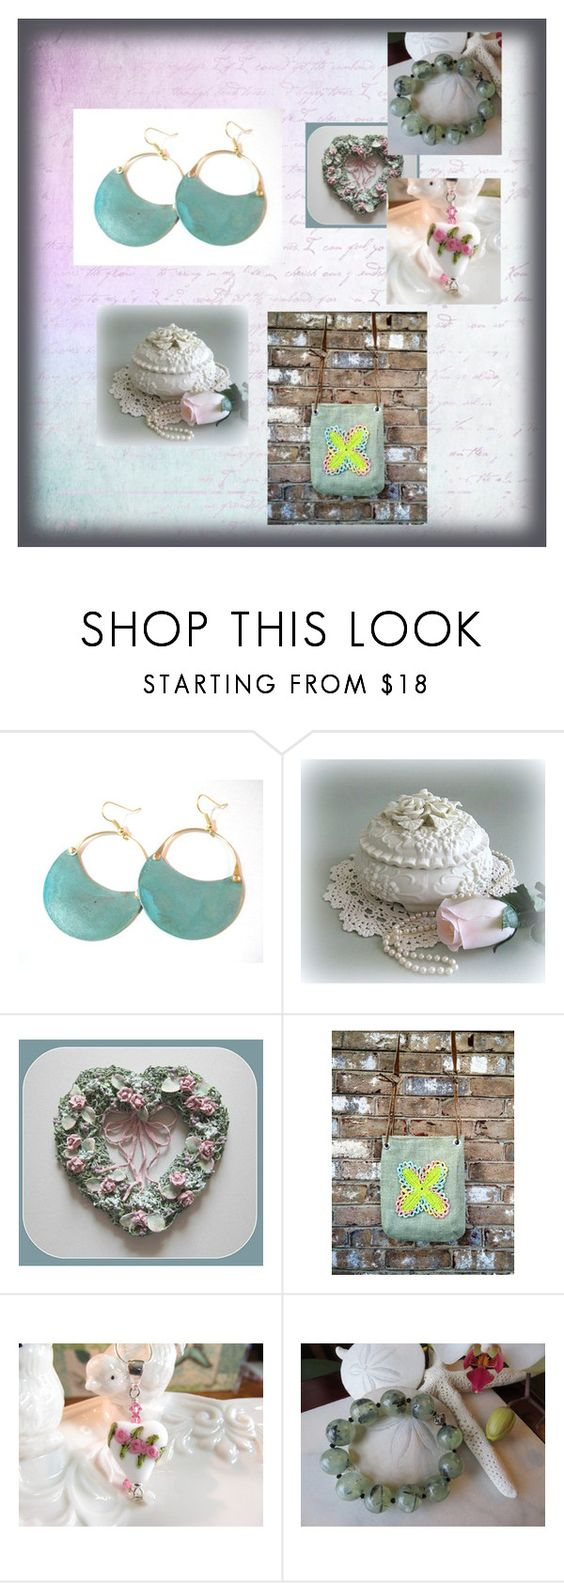 valentine's day gifts by therusticpelican ❤ liked on polyvore  - valentine's day gifts by therusticpelican ❤ liked on polyvore featuringmodern contemporary and